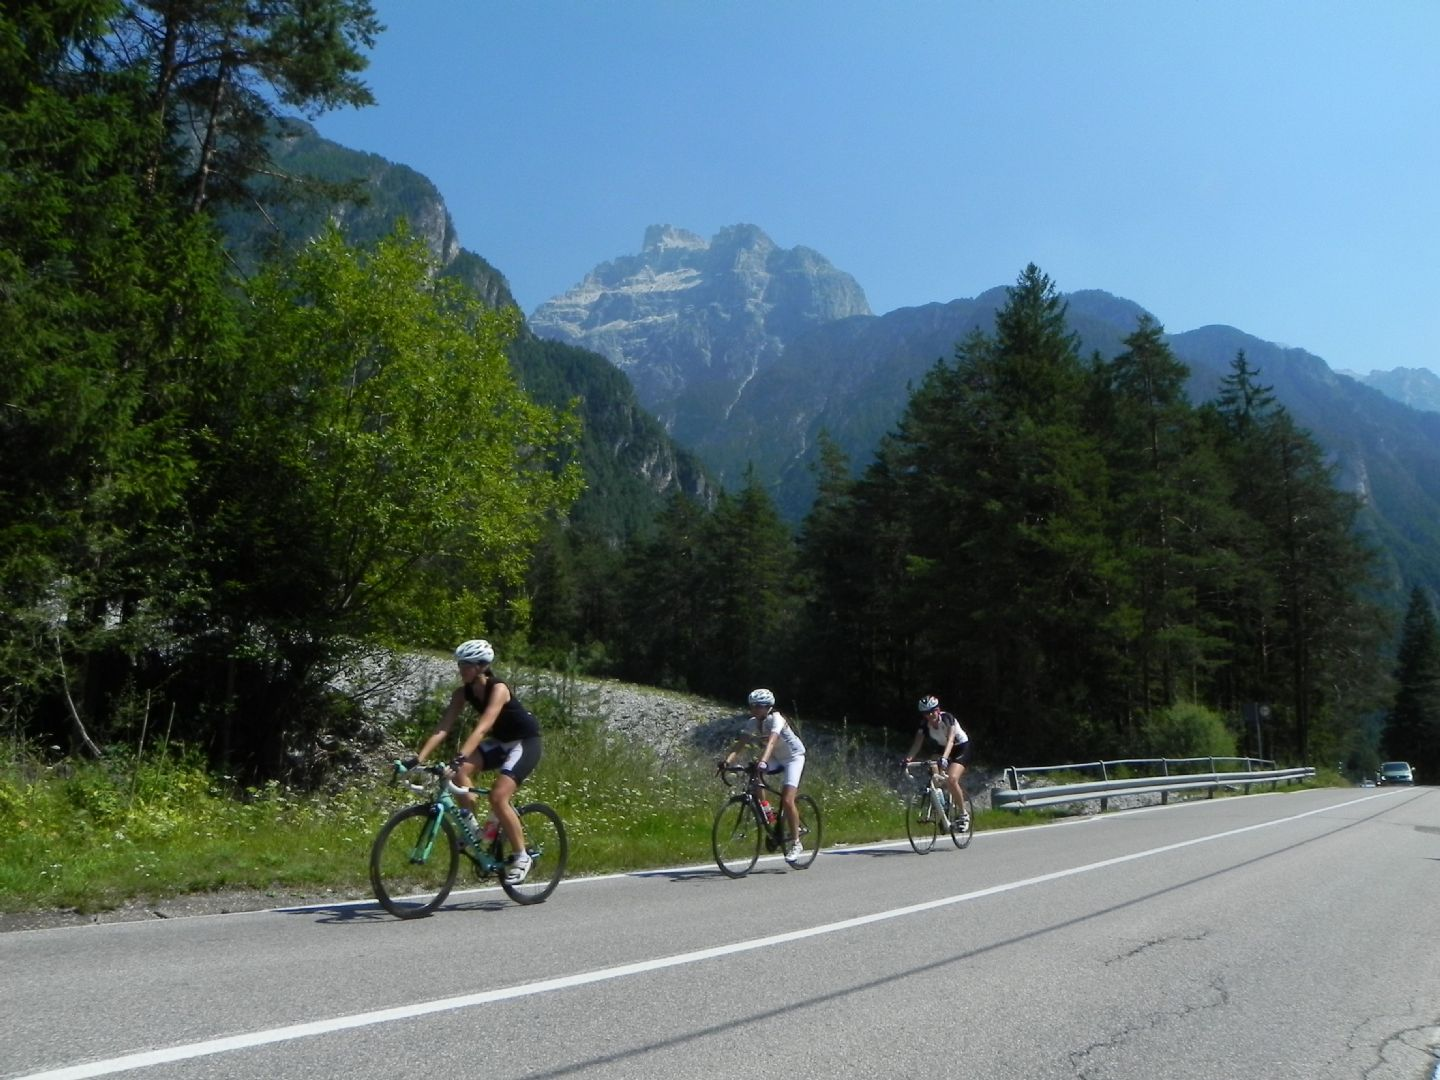 DolomitesRoadCycling74.jpg - Italy - Dolomites and Alps - Italia Road Cycling